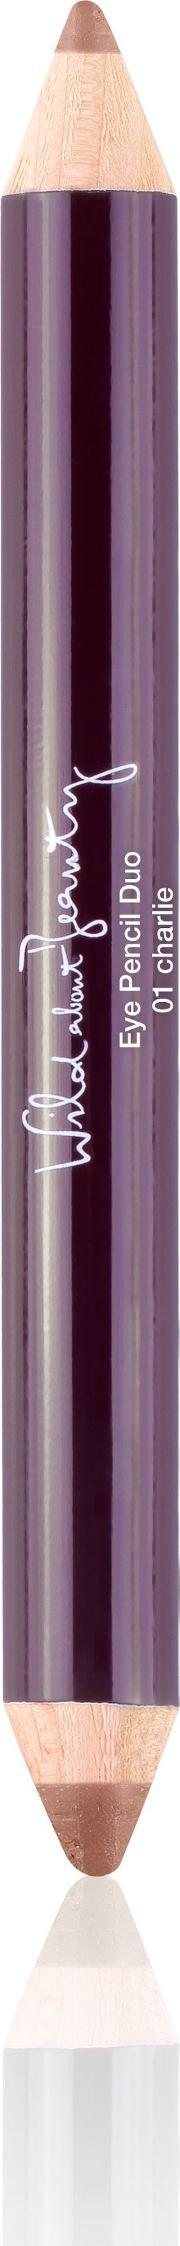 Wild About Beauty , Eyeshadow Pencil Duo, Charlie